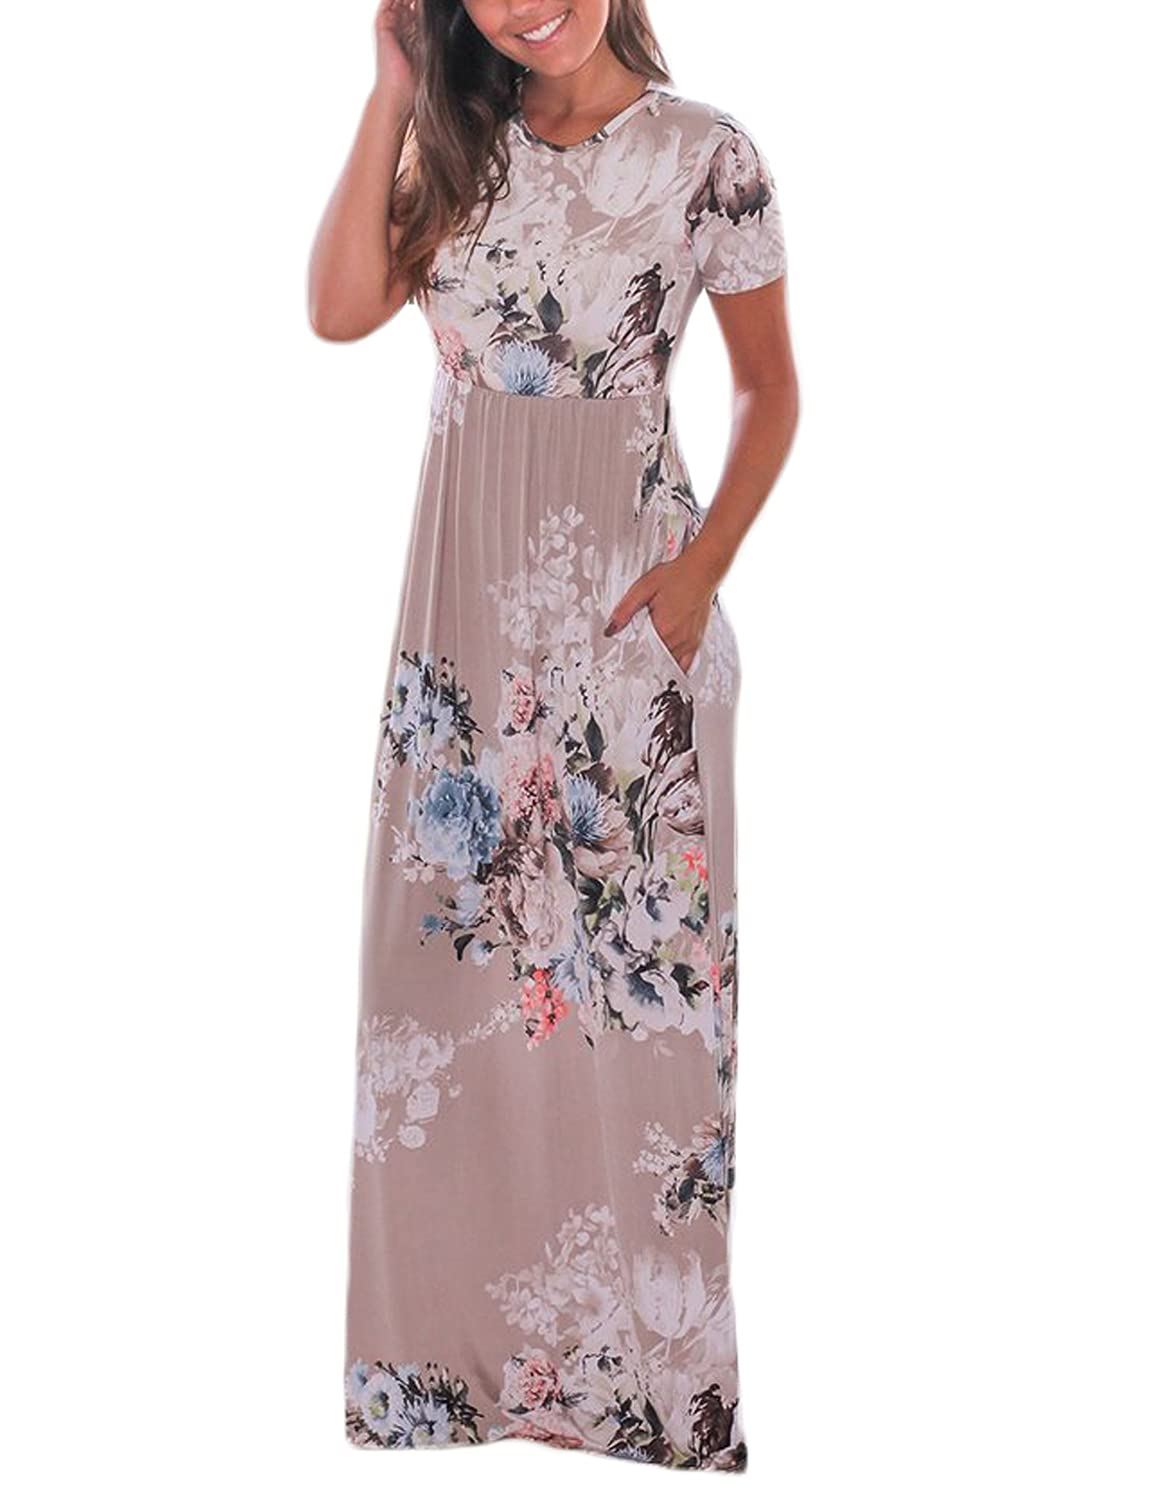 6cef7588c3c Vemper Floral Print Maxi Dress Short Long Sleeve Pockets Long Casual Dress  at Amazon Women s Clothing store